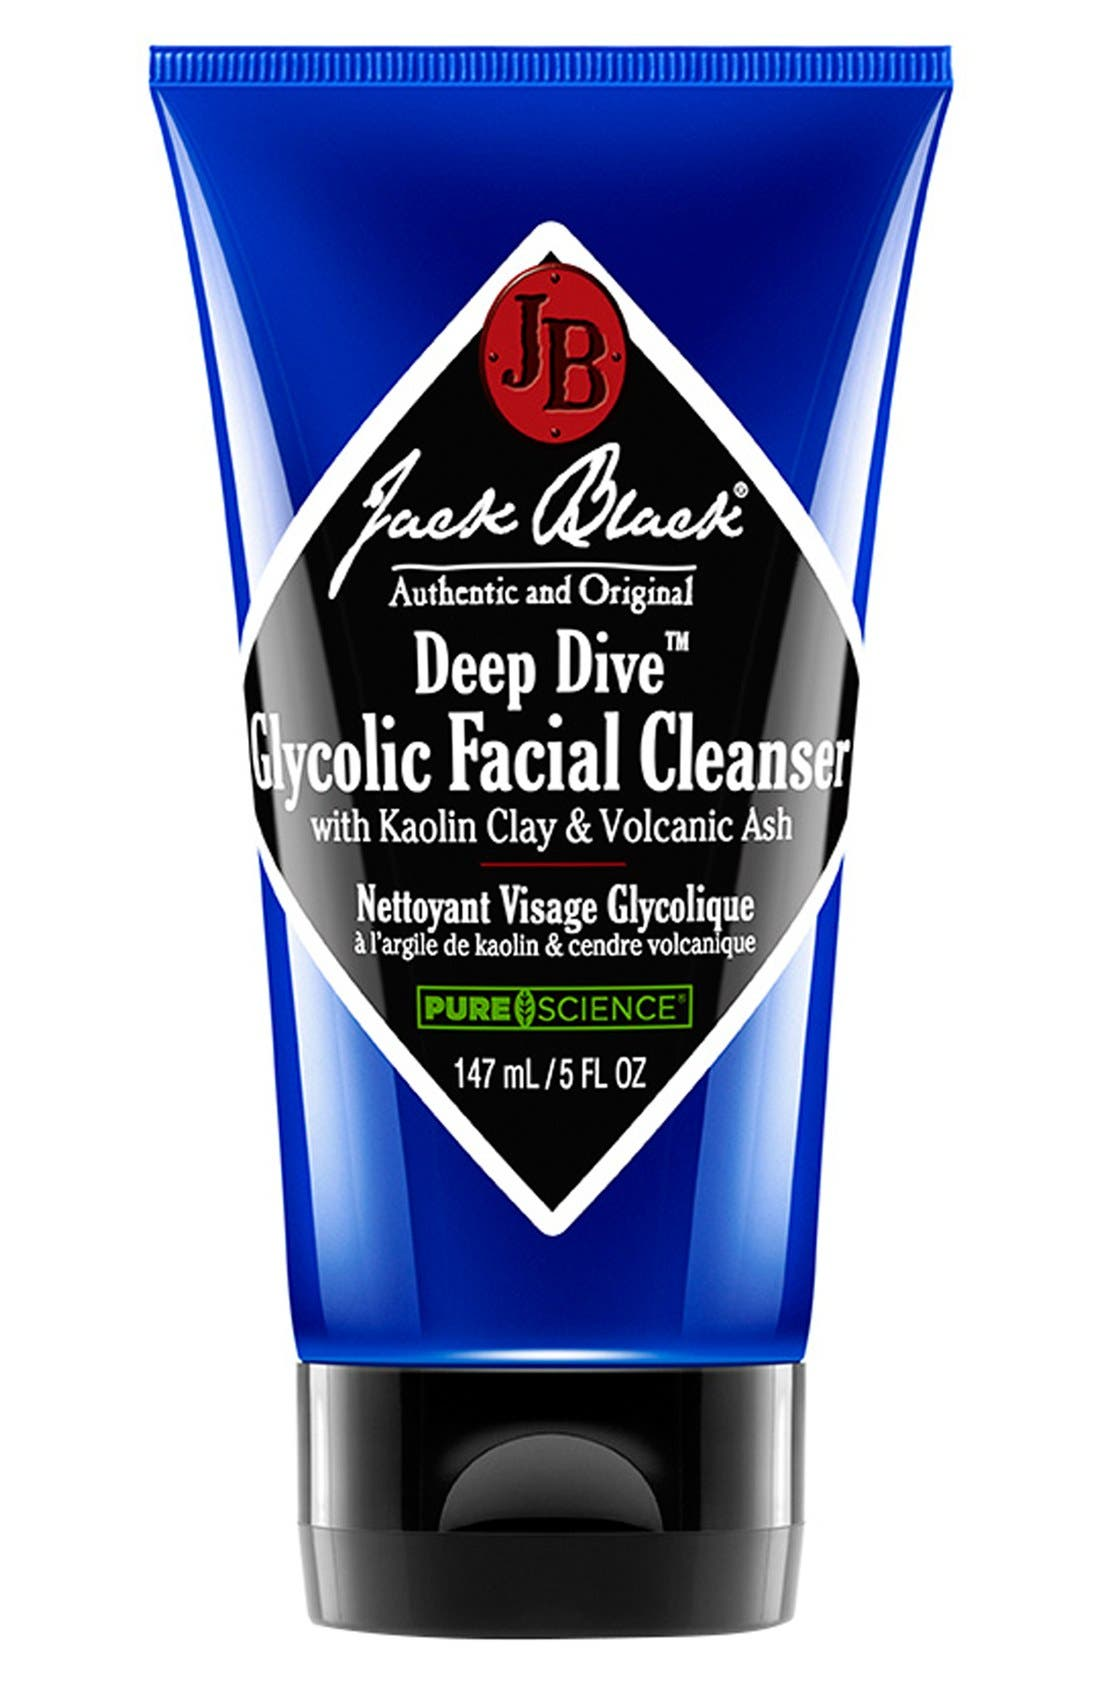 Jack Black 'Deep Dive™' Glycolic Facial Cleanser